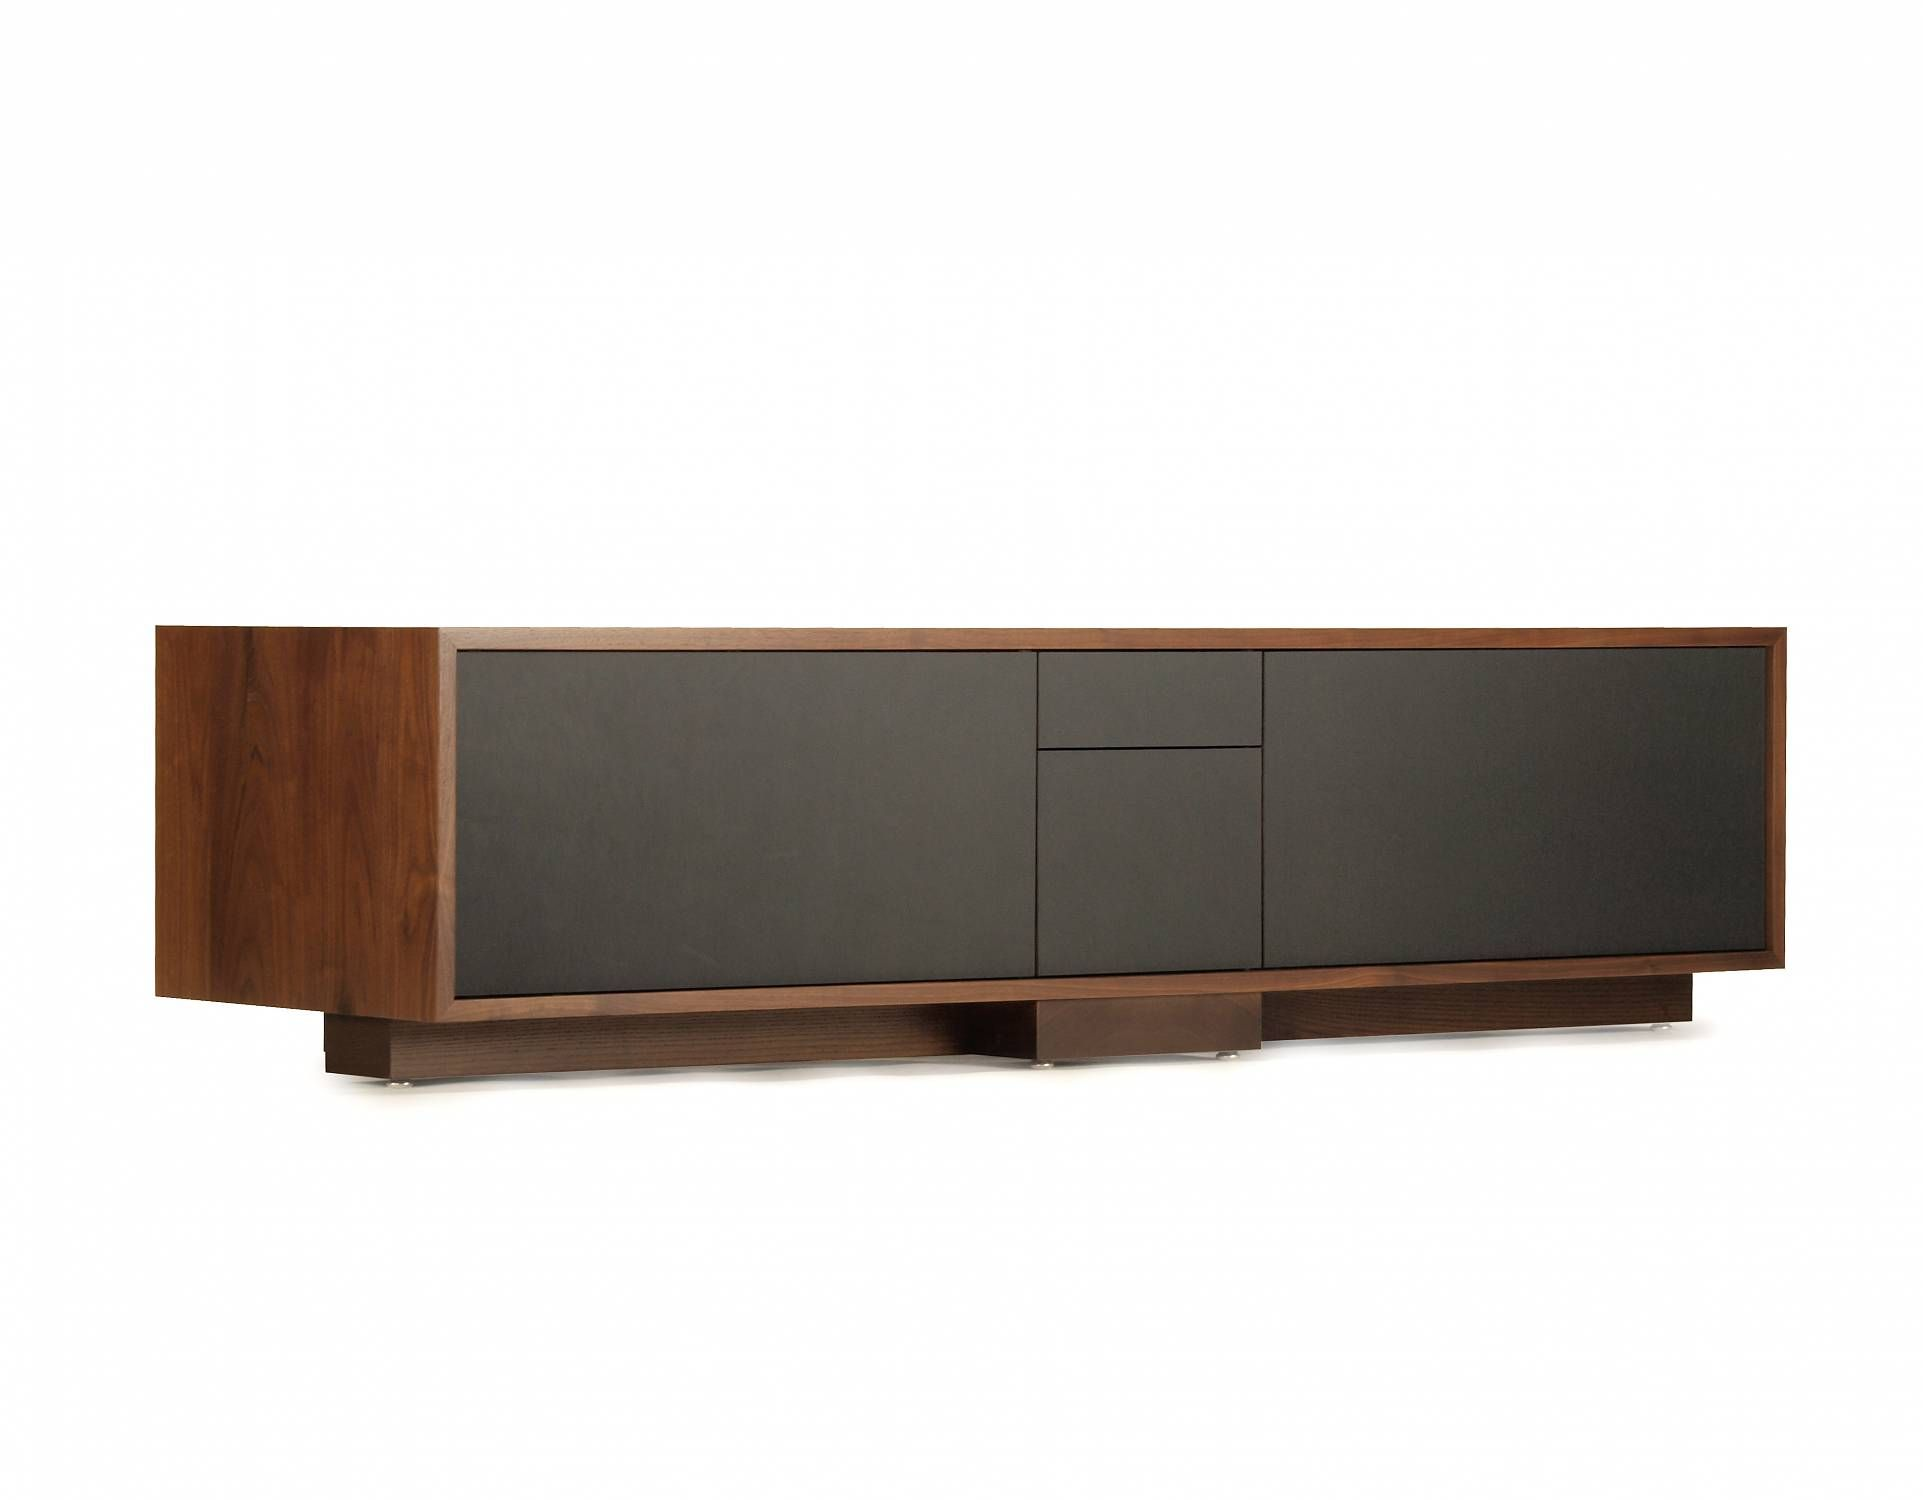 Beau Skram Furniture Company | Storage | Lineground Lowdown Media Unit |  Lineground Lowdown Media Units Feature Solid Timber Construction,  Mortise And Tenon ...